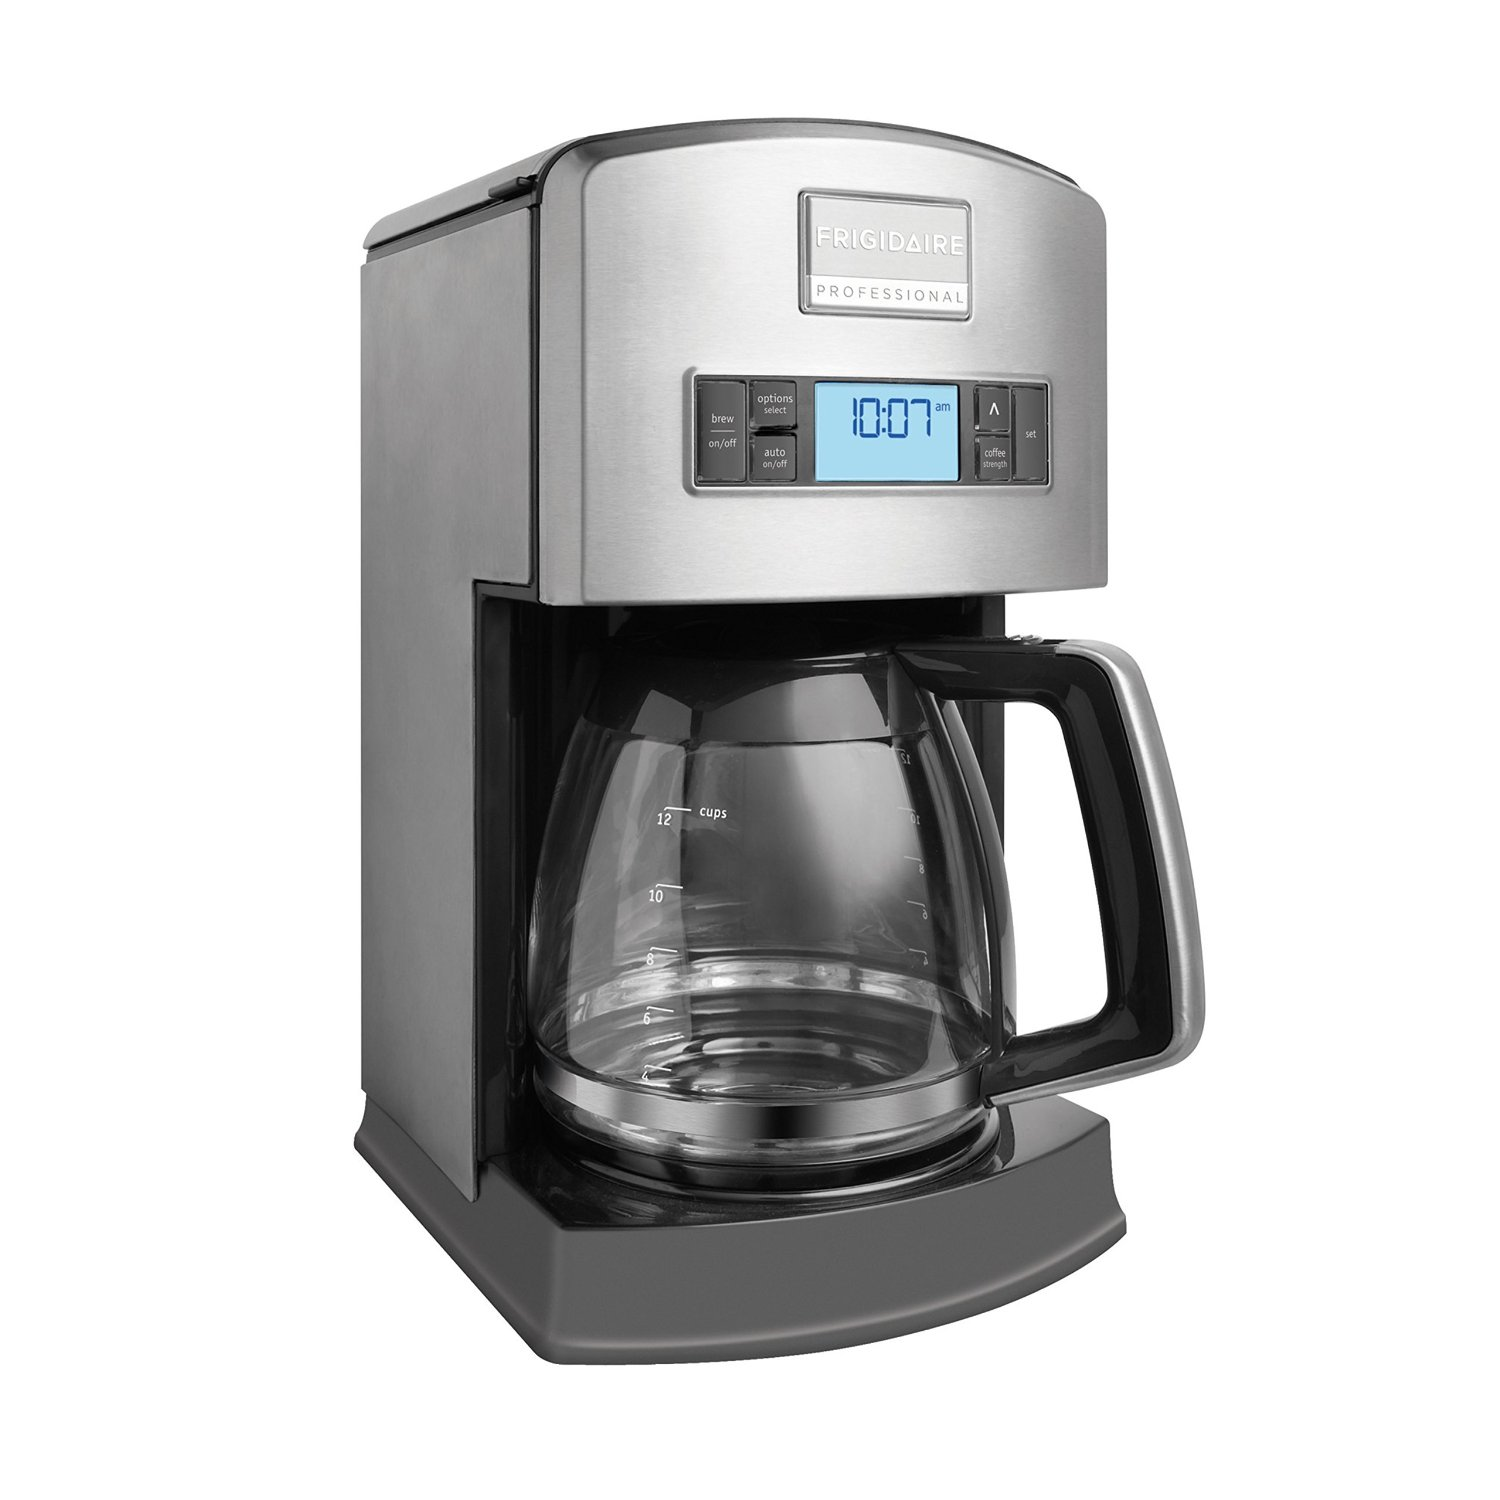 10 best coffee makers for home at affordable prices Coffee maker brands